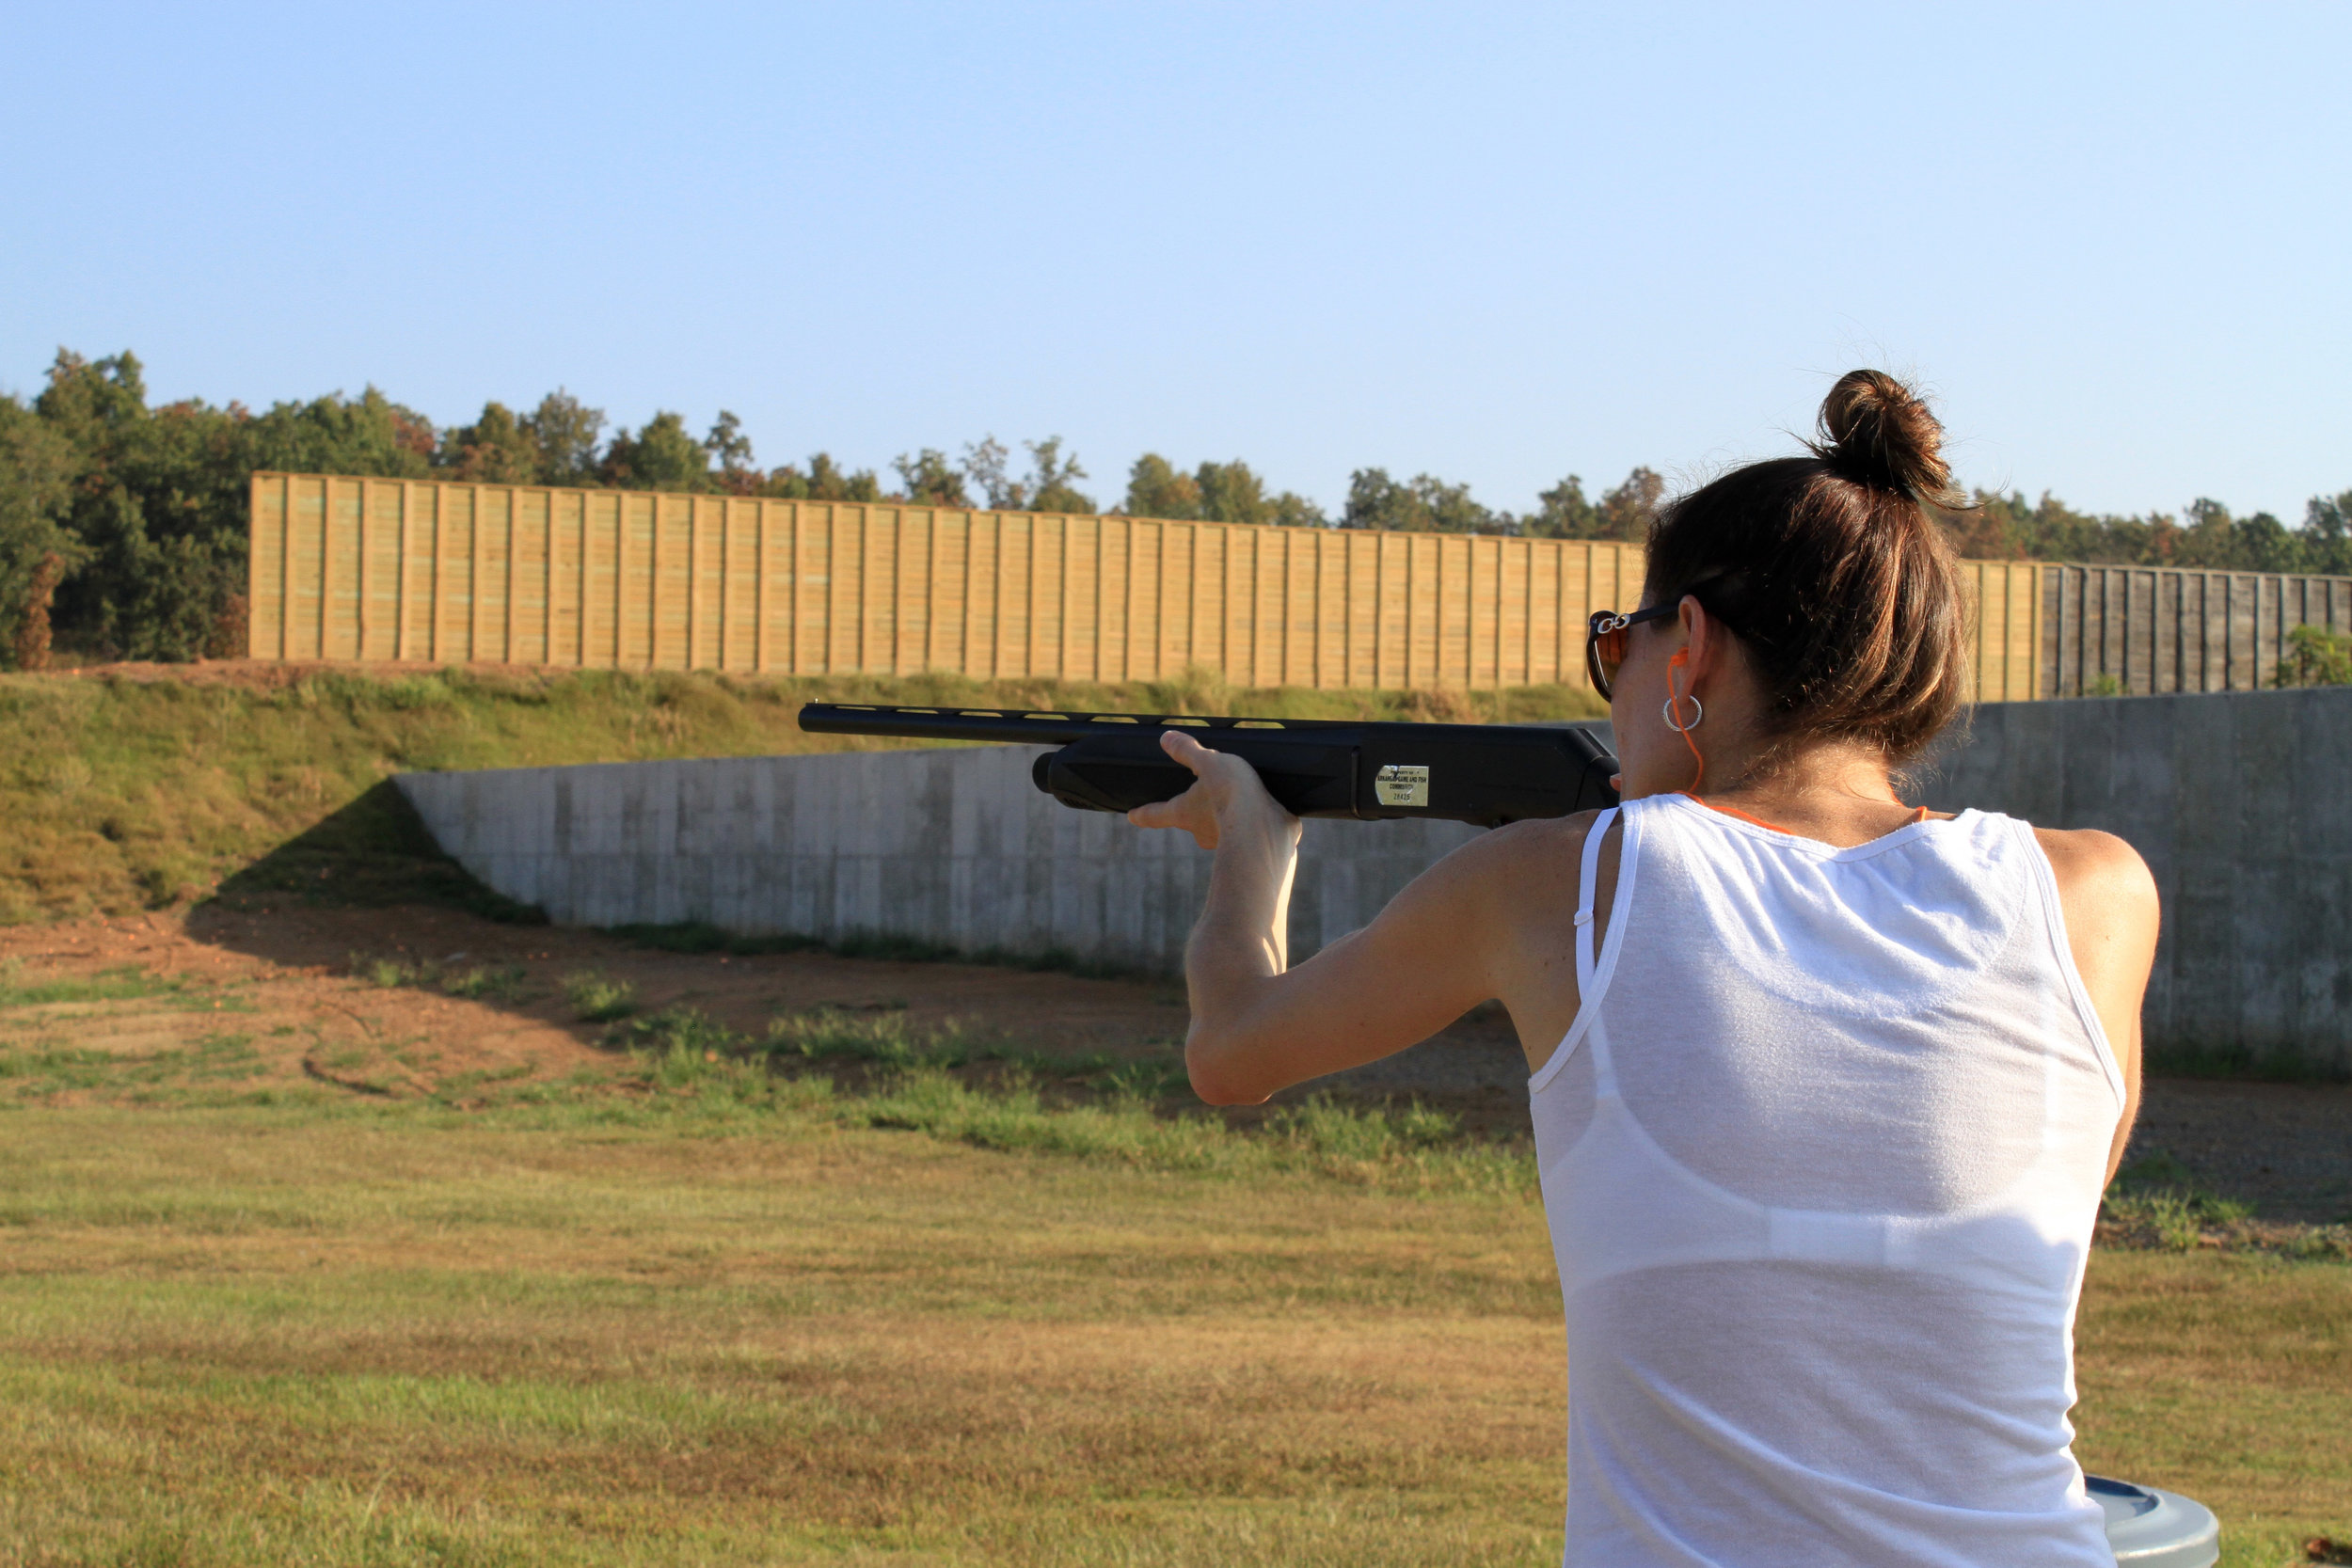 Arkansas Game and Fish Firing Range, Conway